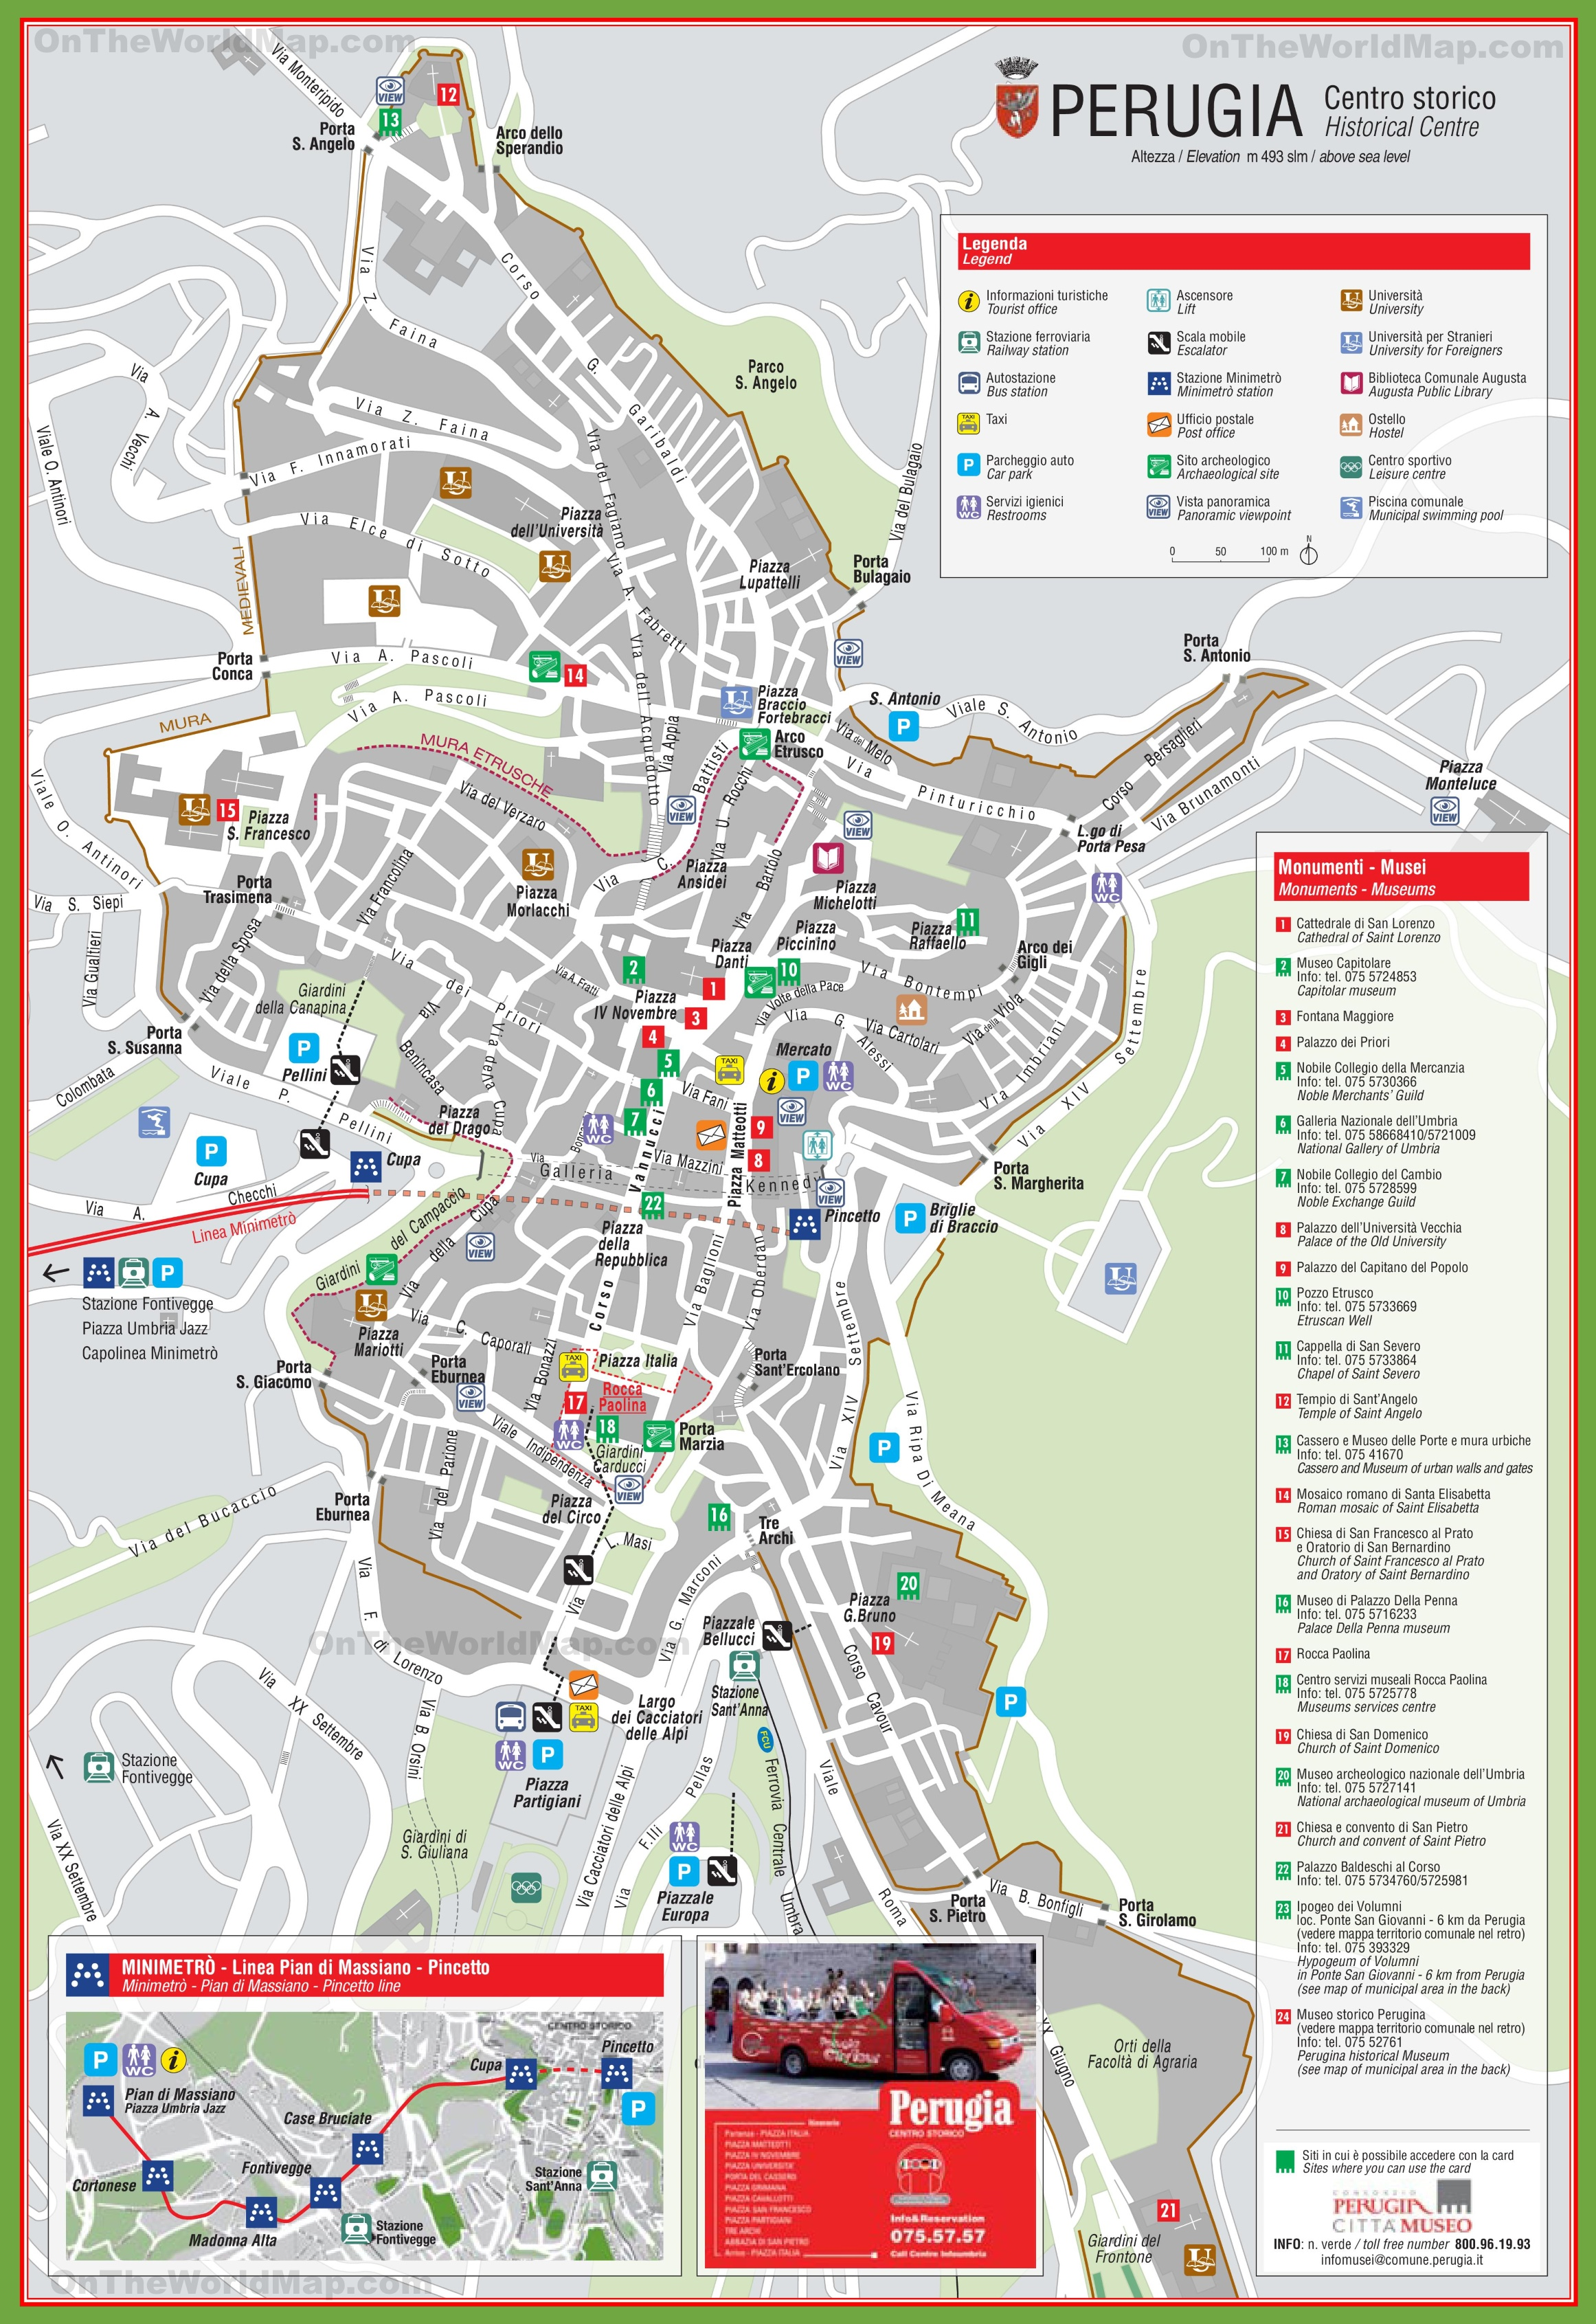 Perugia tourist attractions map – Italy Tourist Attractions Map